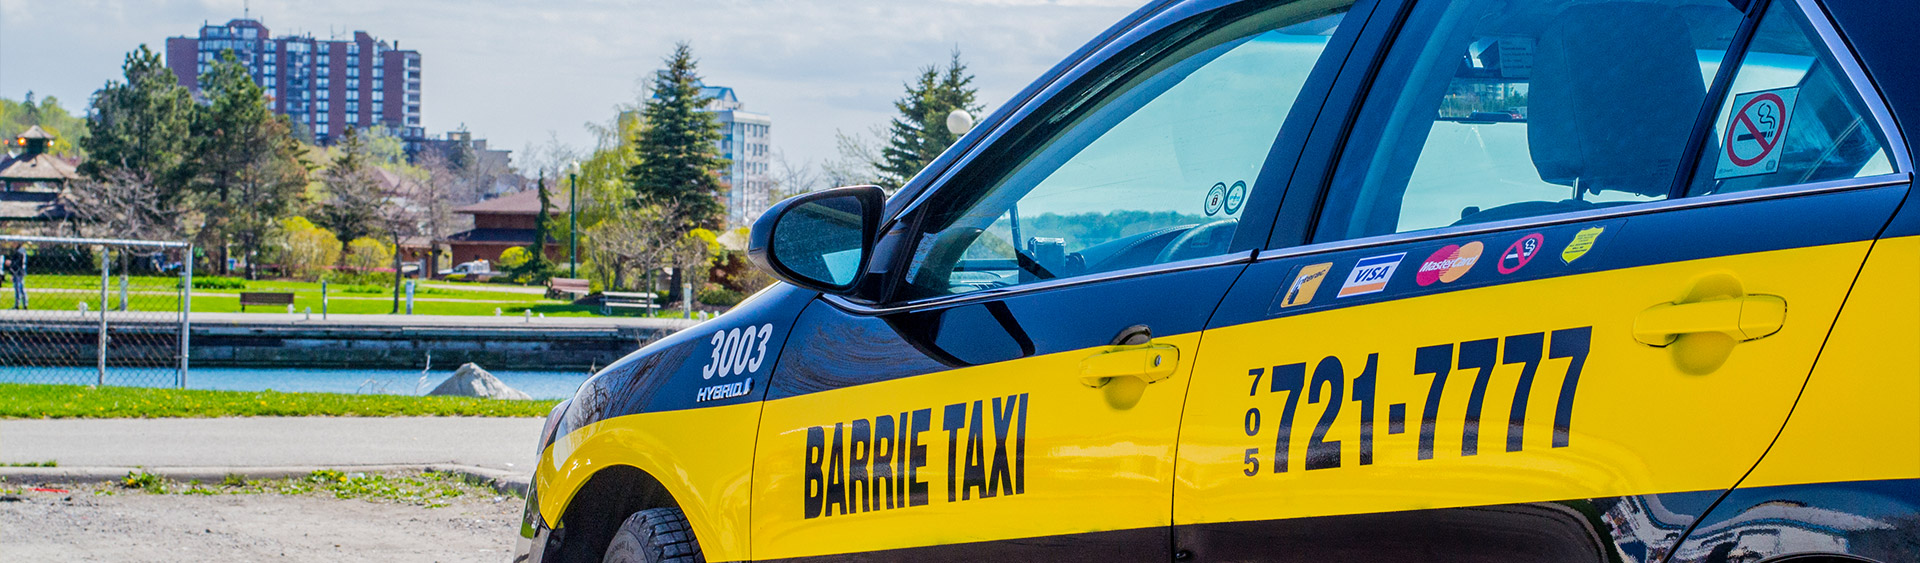 3492d0a095c9 Barrie Taxi Services